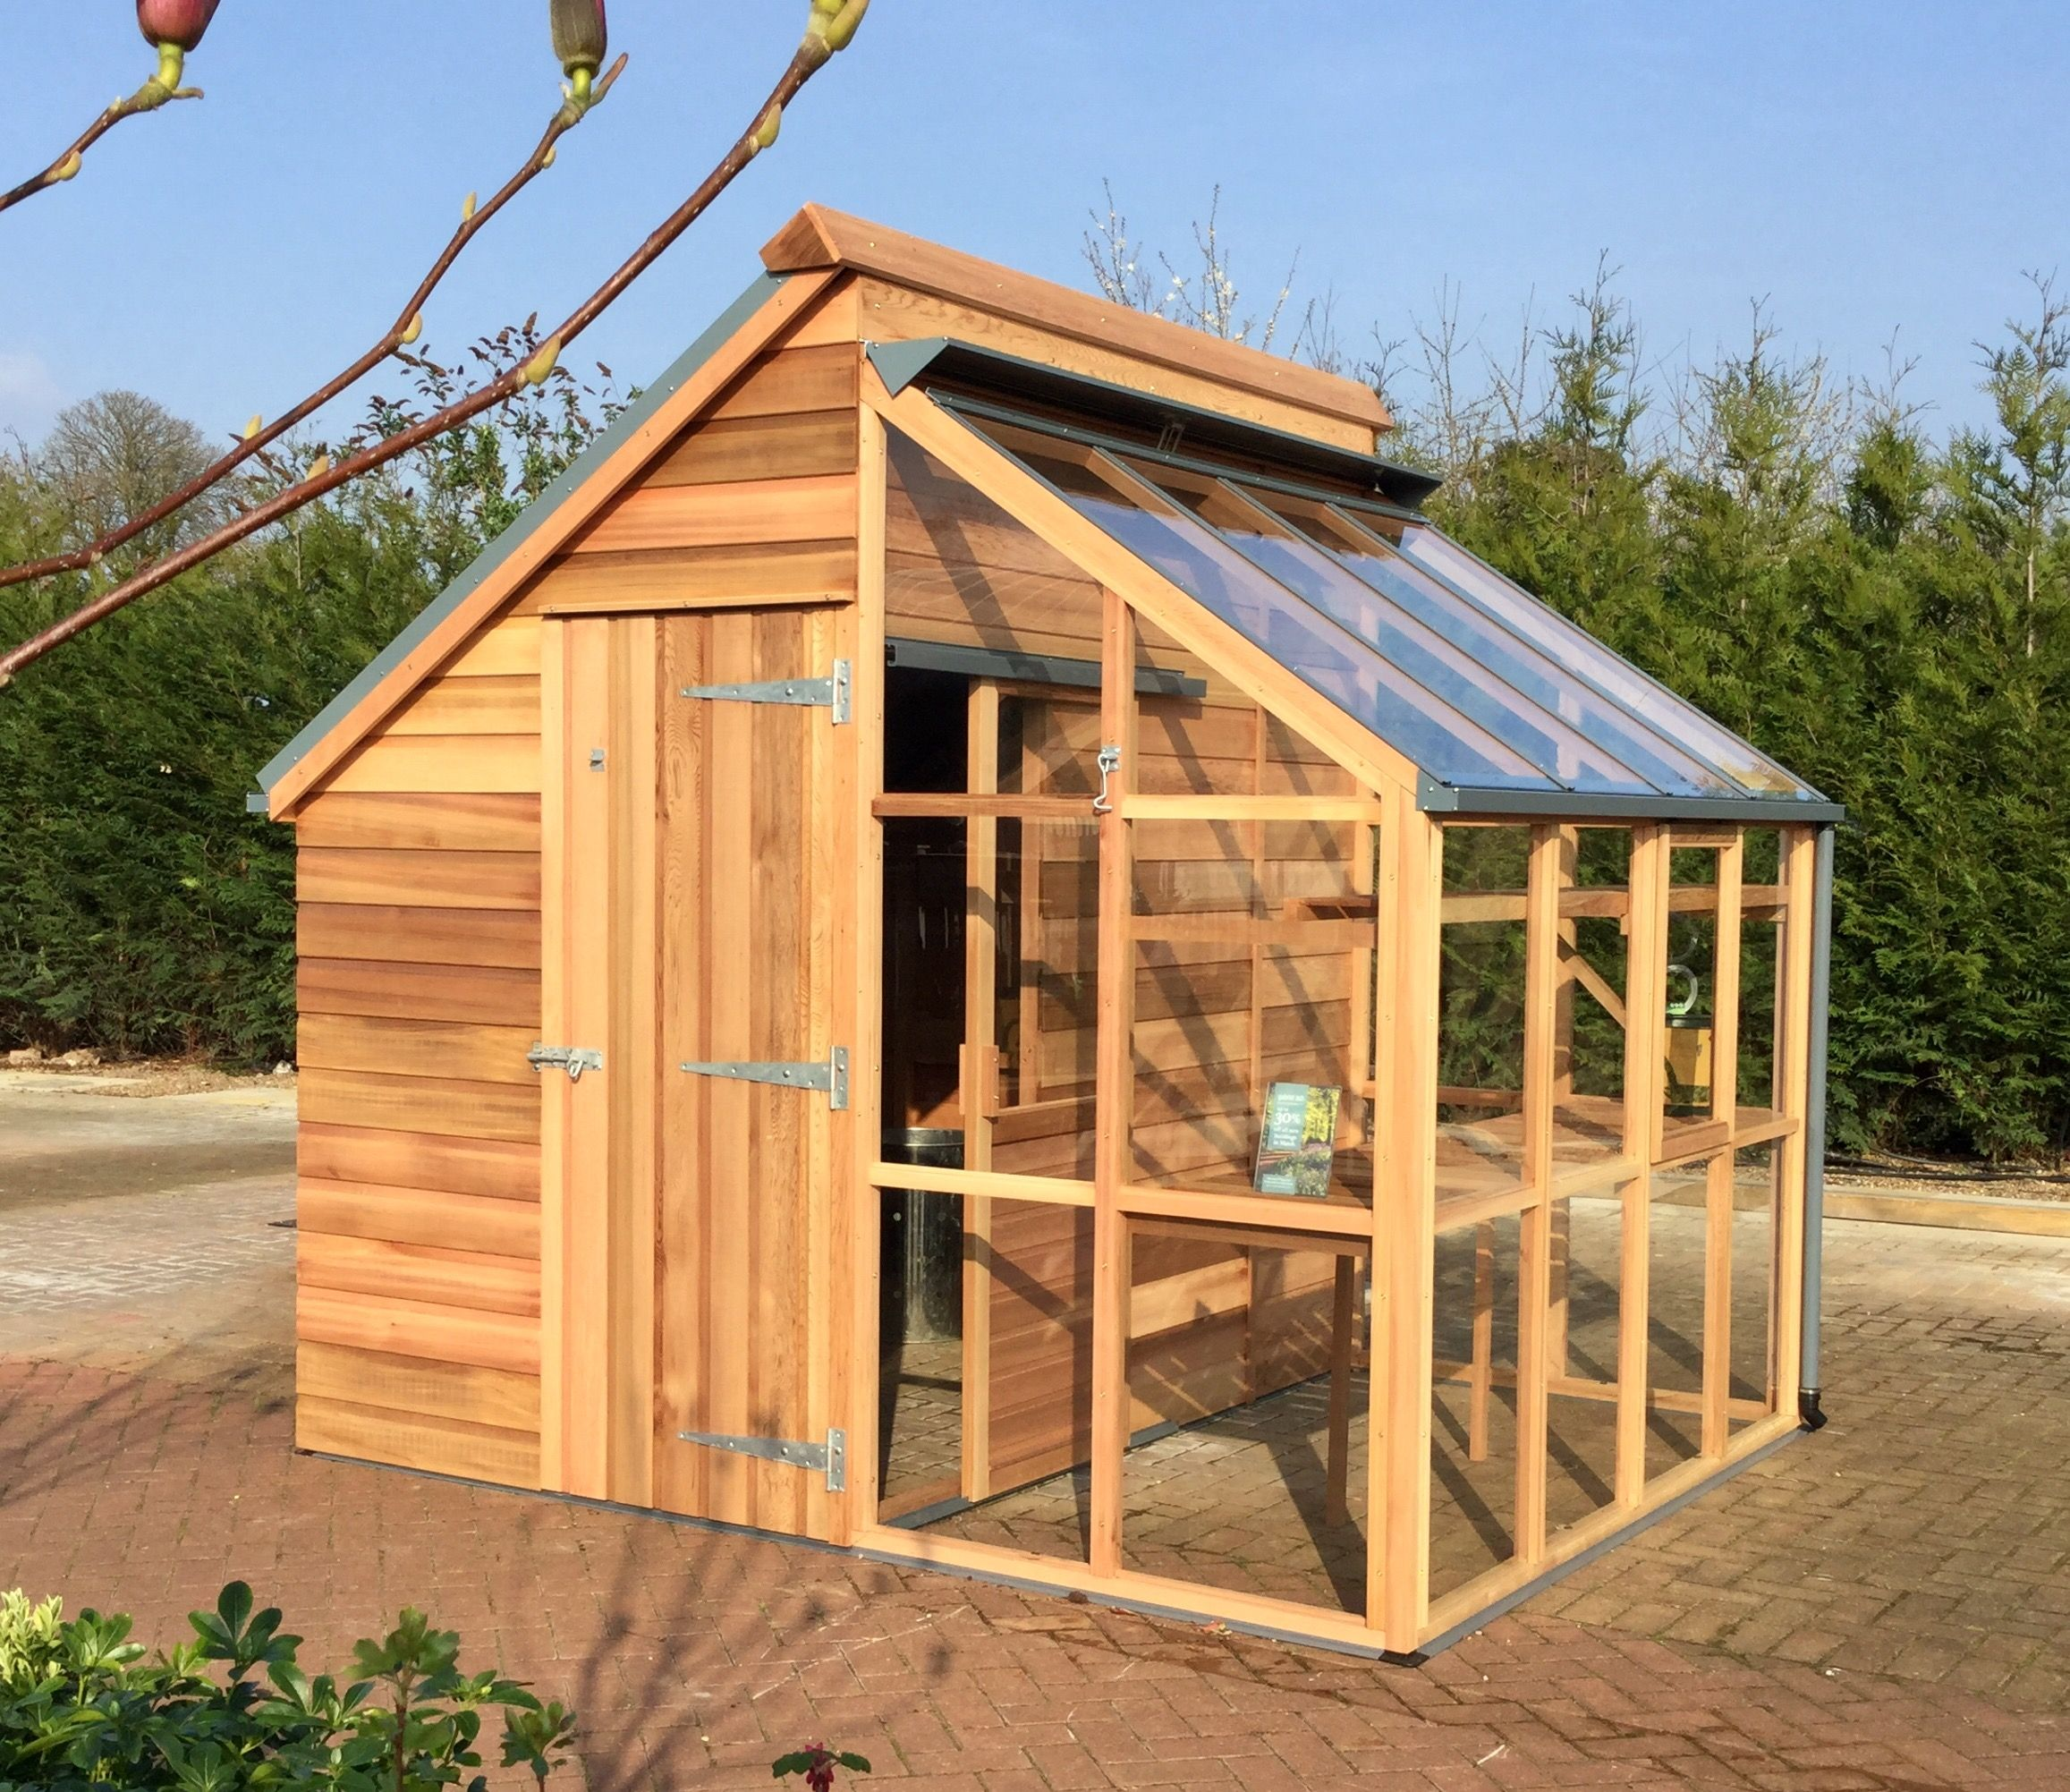 The Grow And Combination Shed Greenhouse From Potting Range By Gabriel Ash As Seen At Malvern Garden Buildings Show Site In Greater